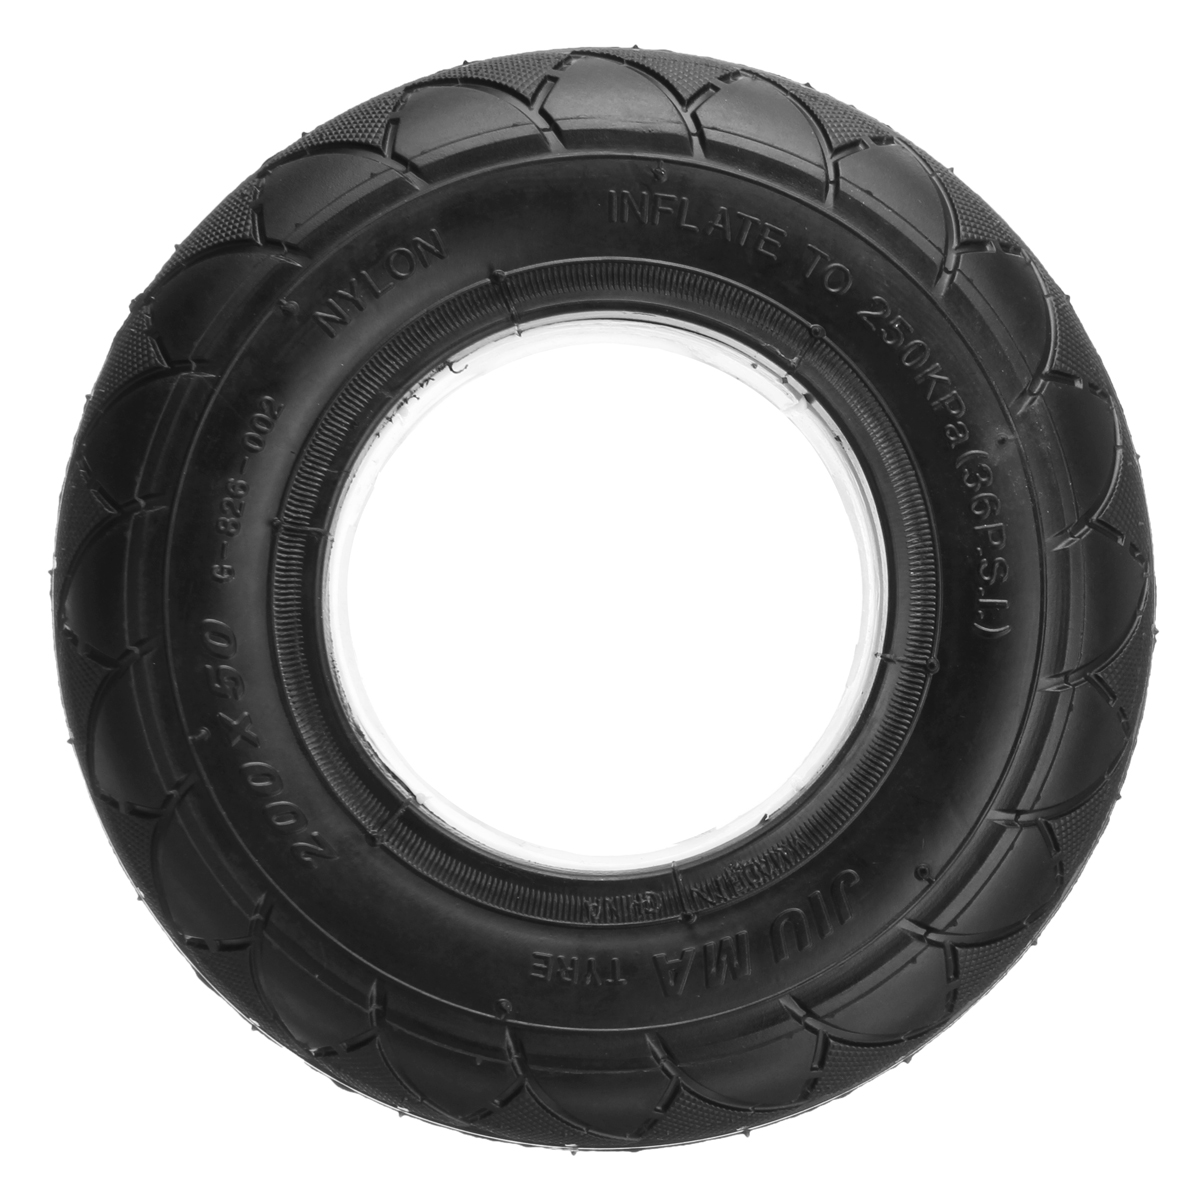 "BIKIGHT Electric Scooter Tire Cover Tyre Cross-country Tread Pattern For Razor 200x50 (8"" x 2"")"